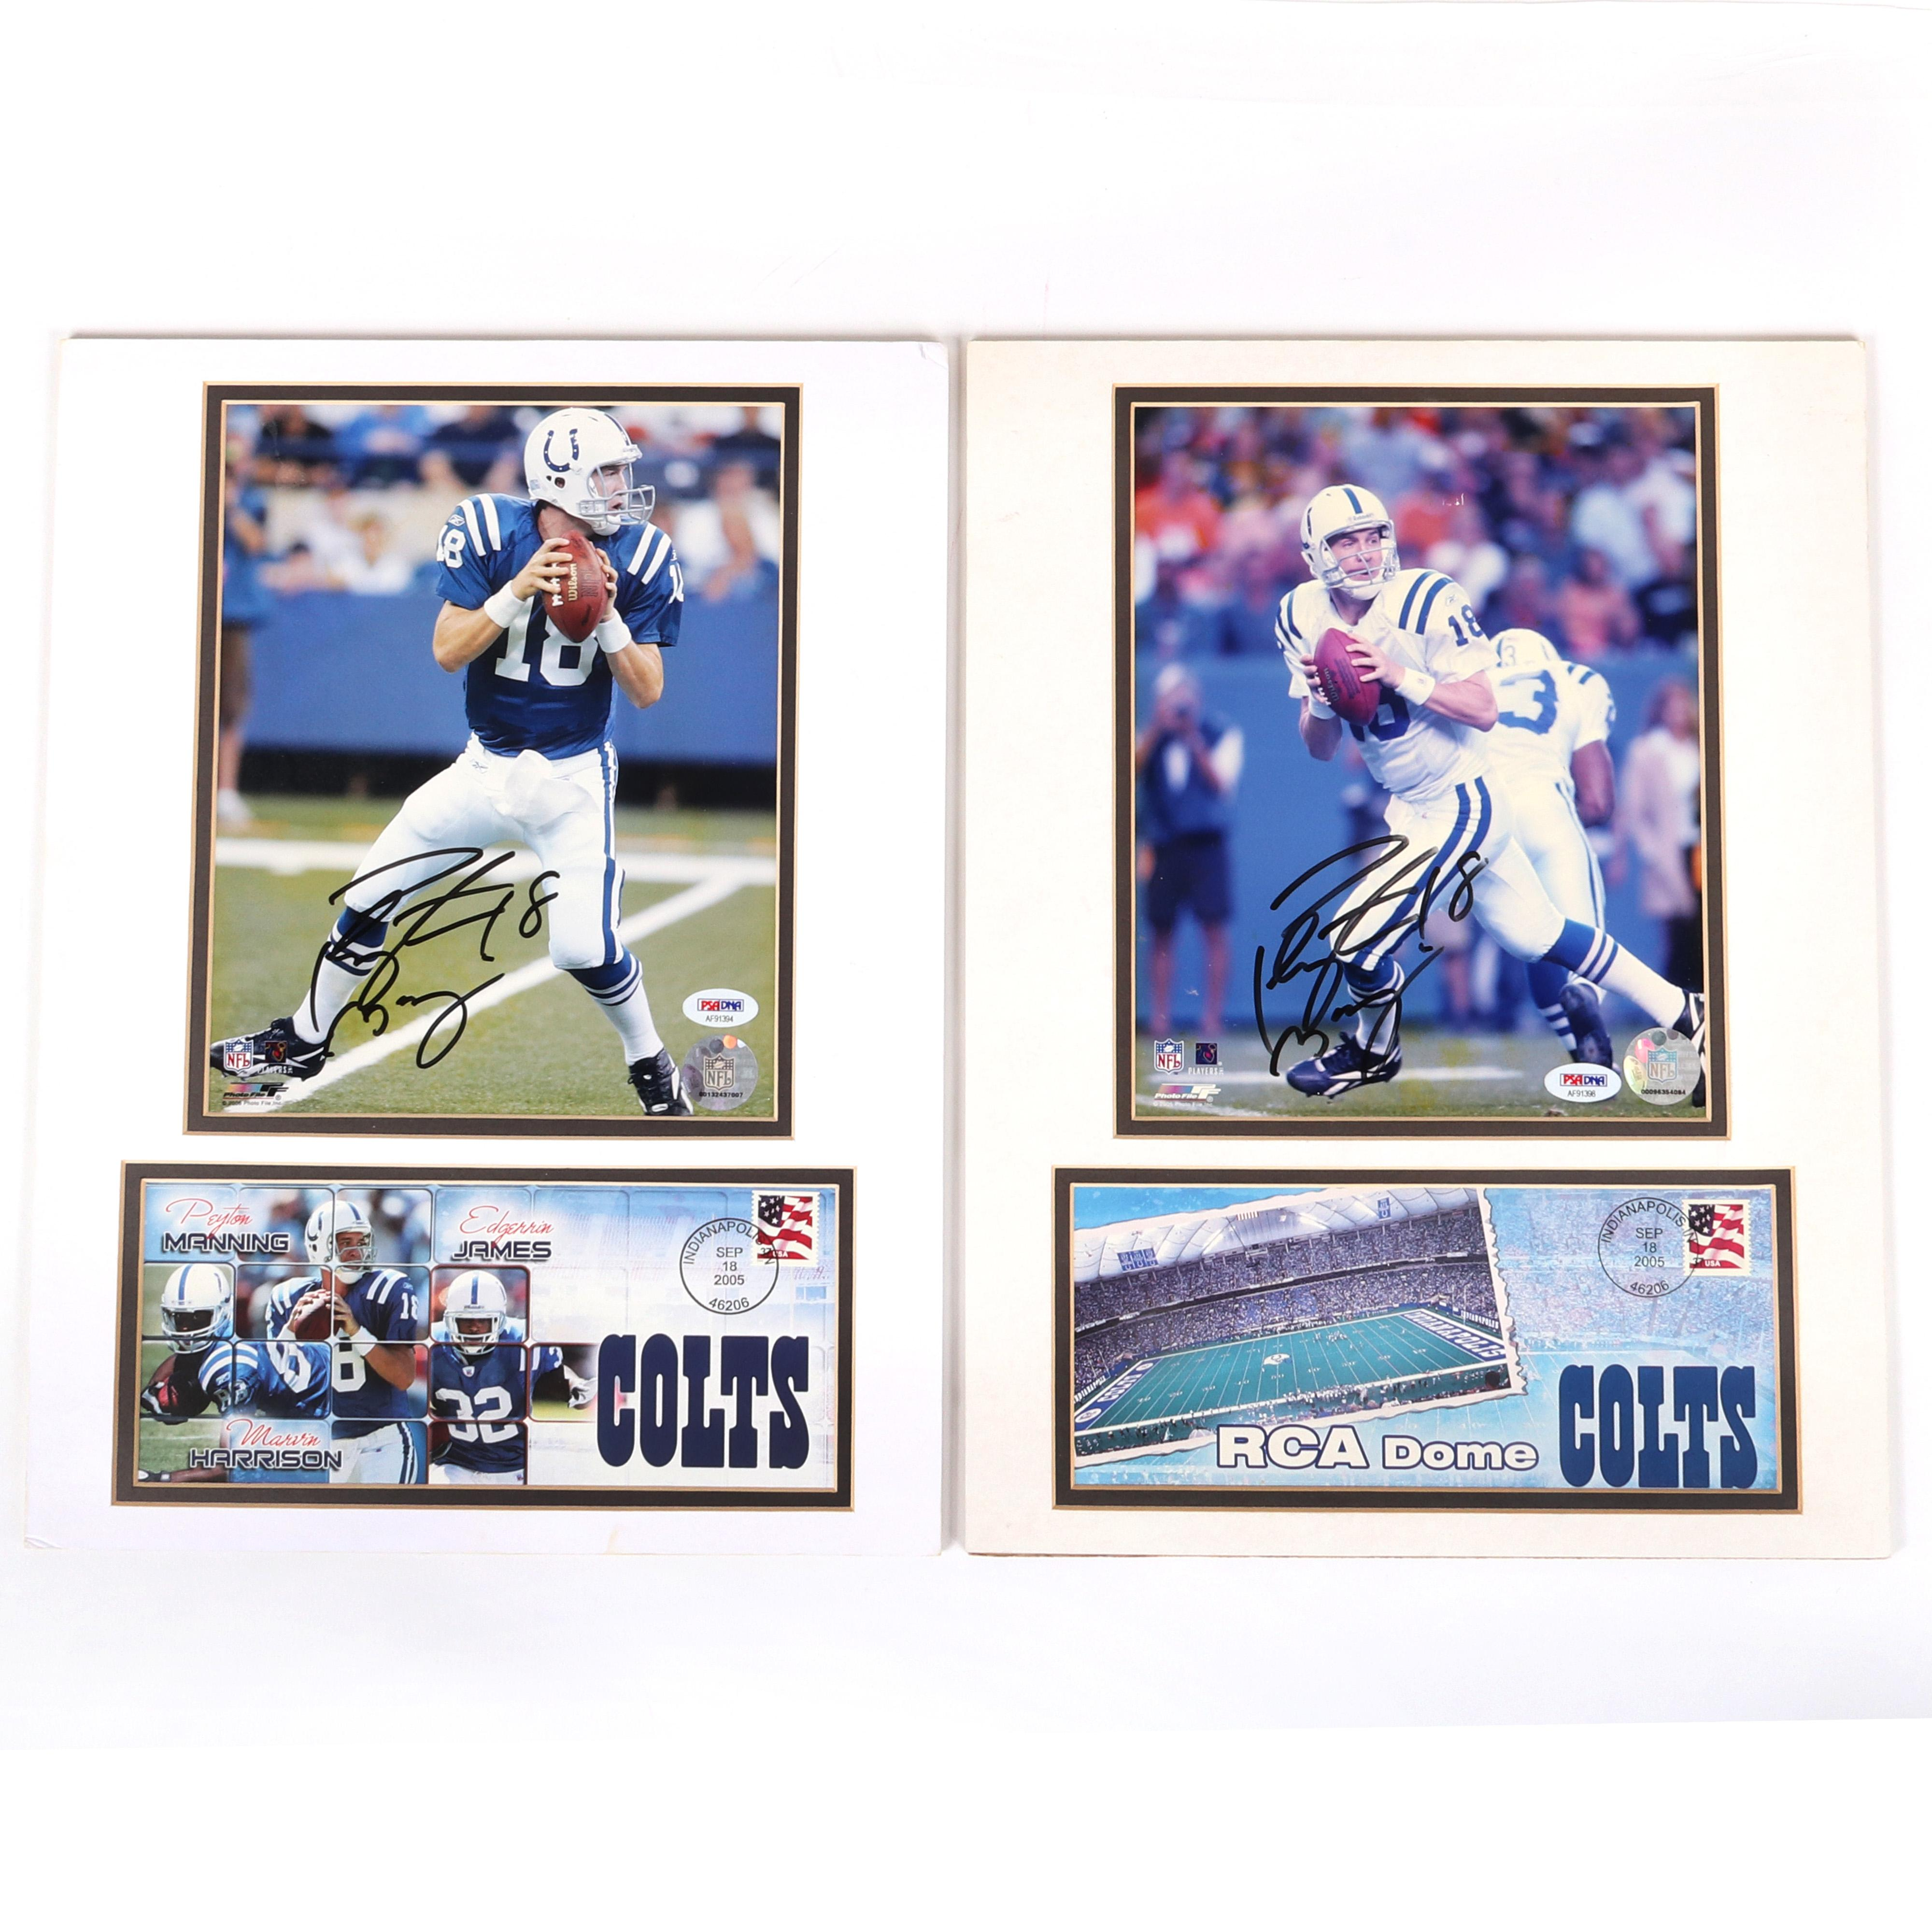 2 Peyton Manning Autographed Photos w/First Day Covers PSA/DNA